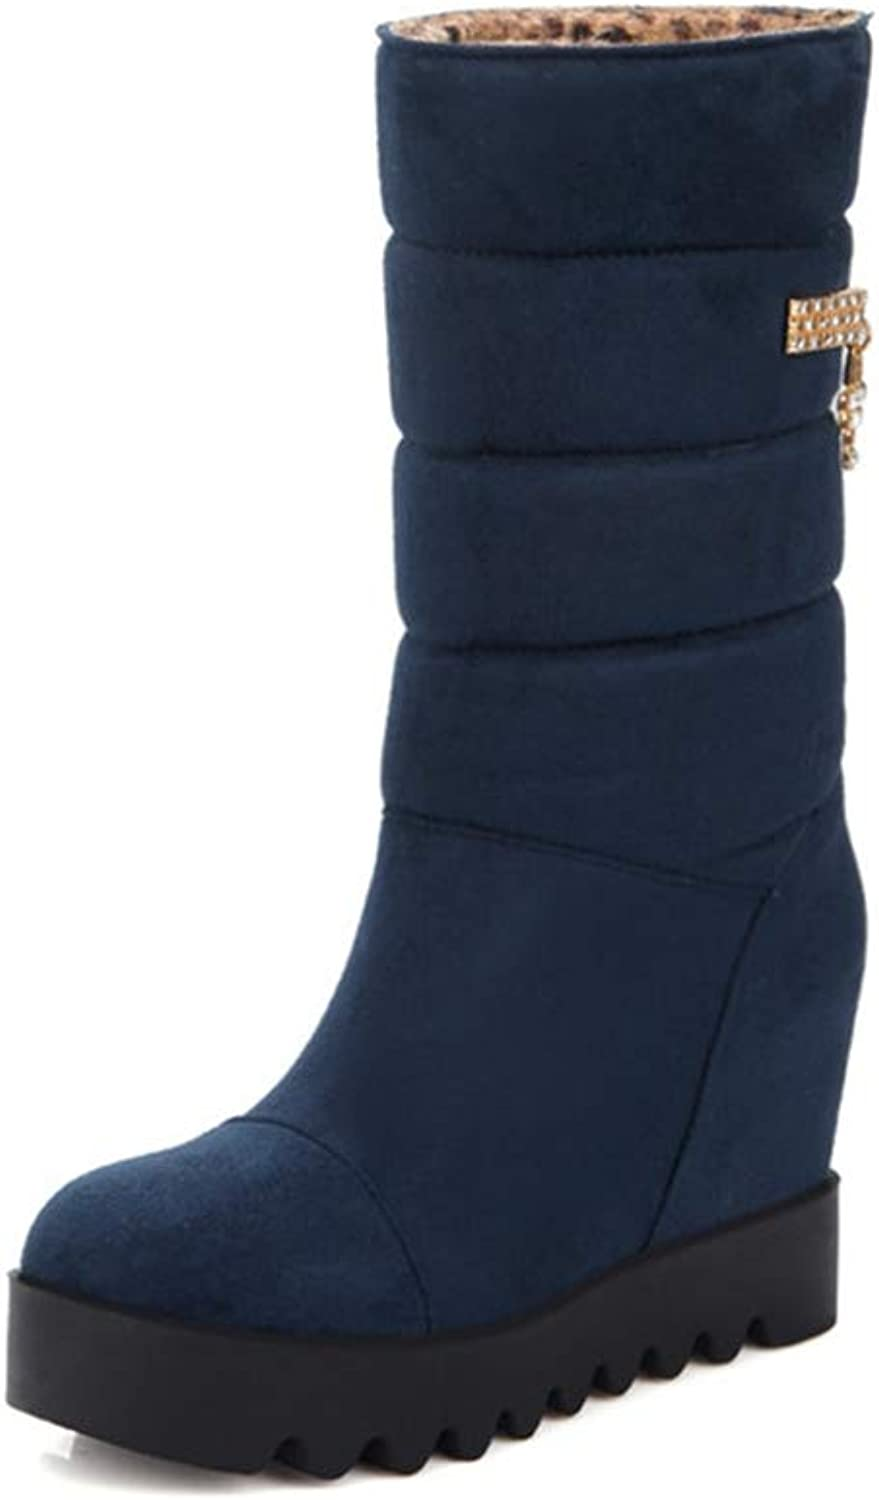 LVYING Winter Fashion Snow Boots Round Toe Women Mid Calf Boots Platform Heigh Increasing Flock Boots